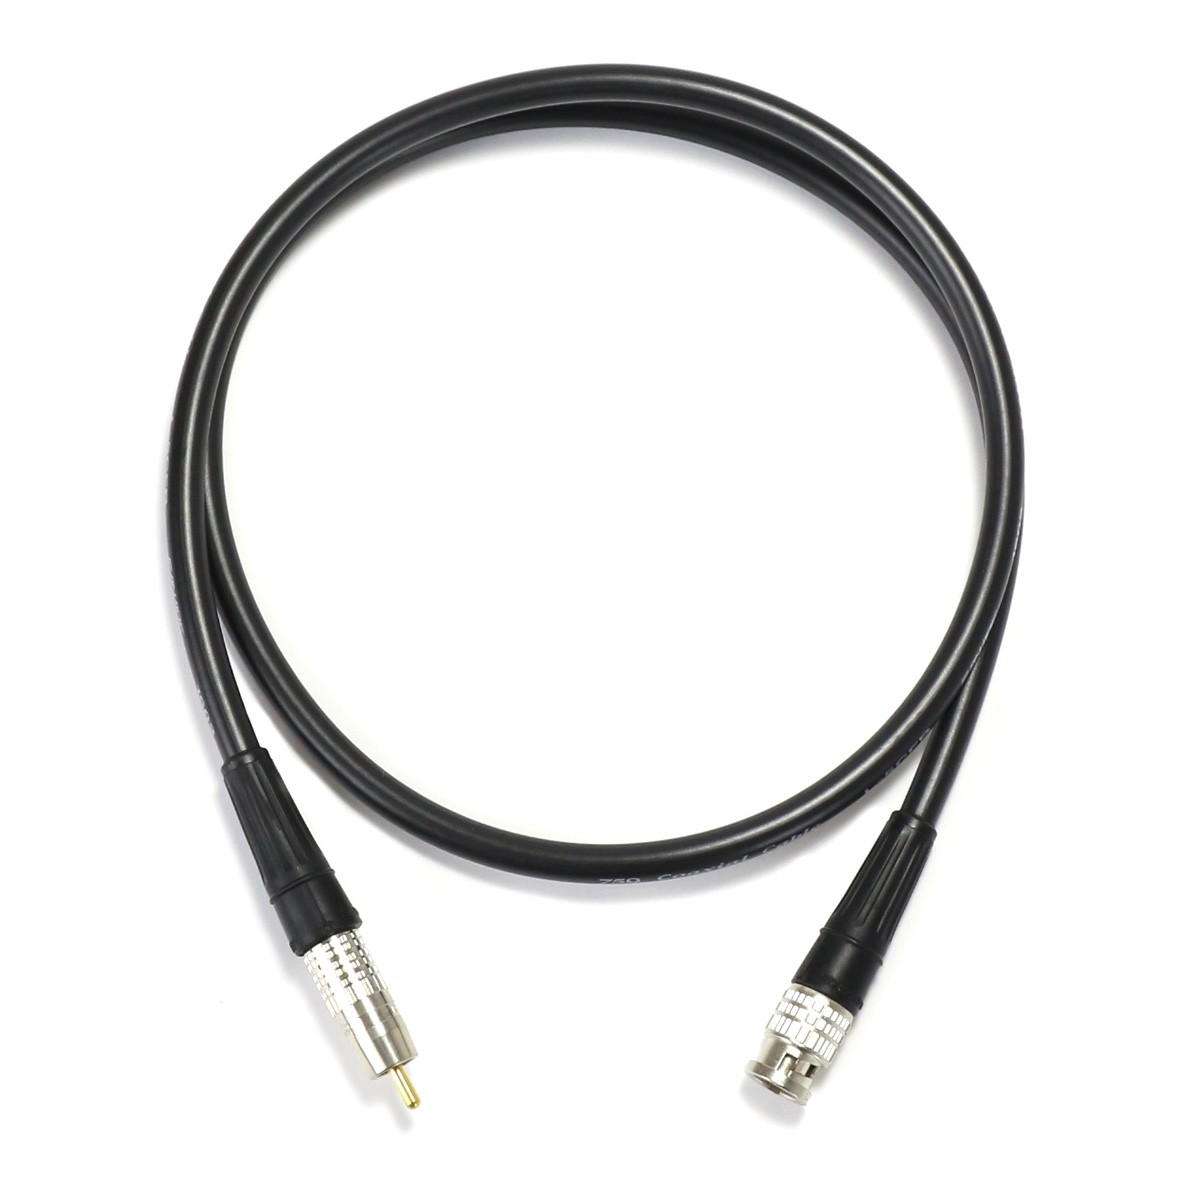 Canare Coaxial Digital Cable 75 Ohm